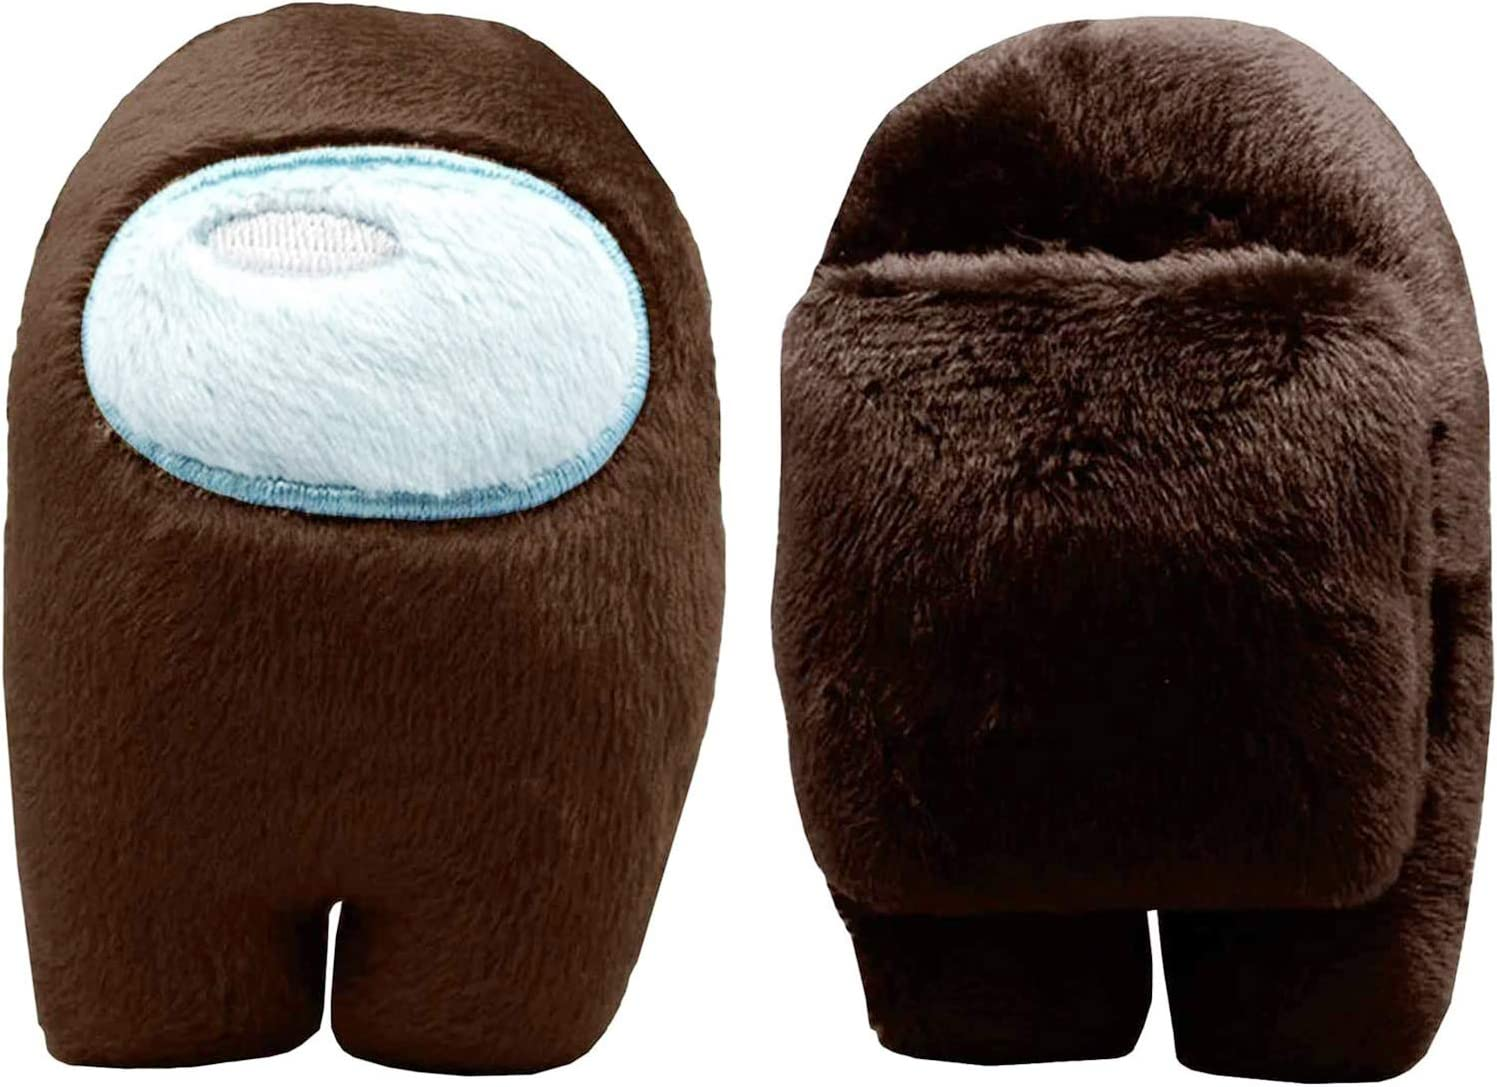 4.3 inch Soft for Game Fans Crewmate Astronaut Doll Stuffed Game Toy 1pc Among Us Plush Toy Blue